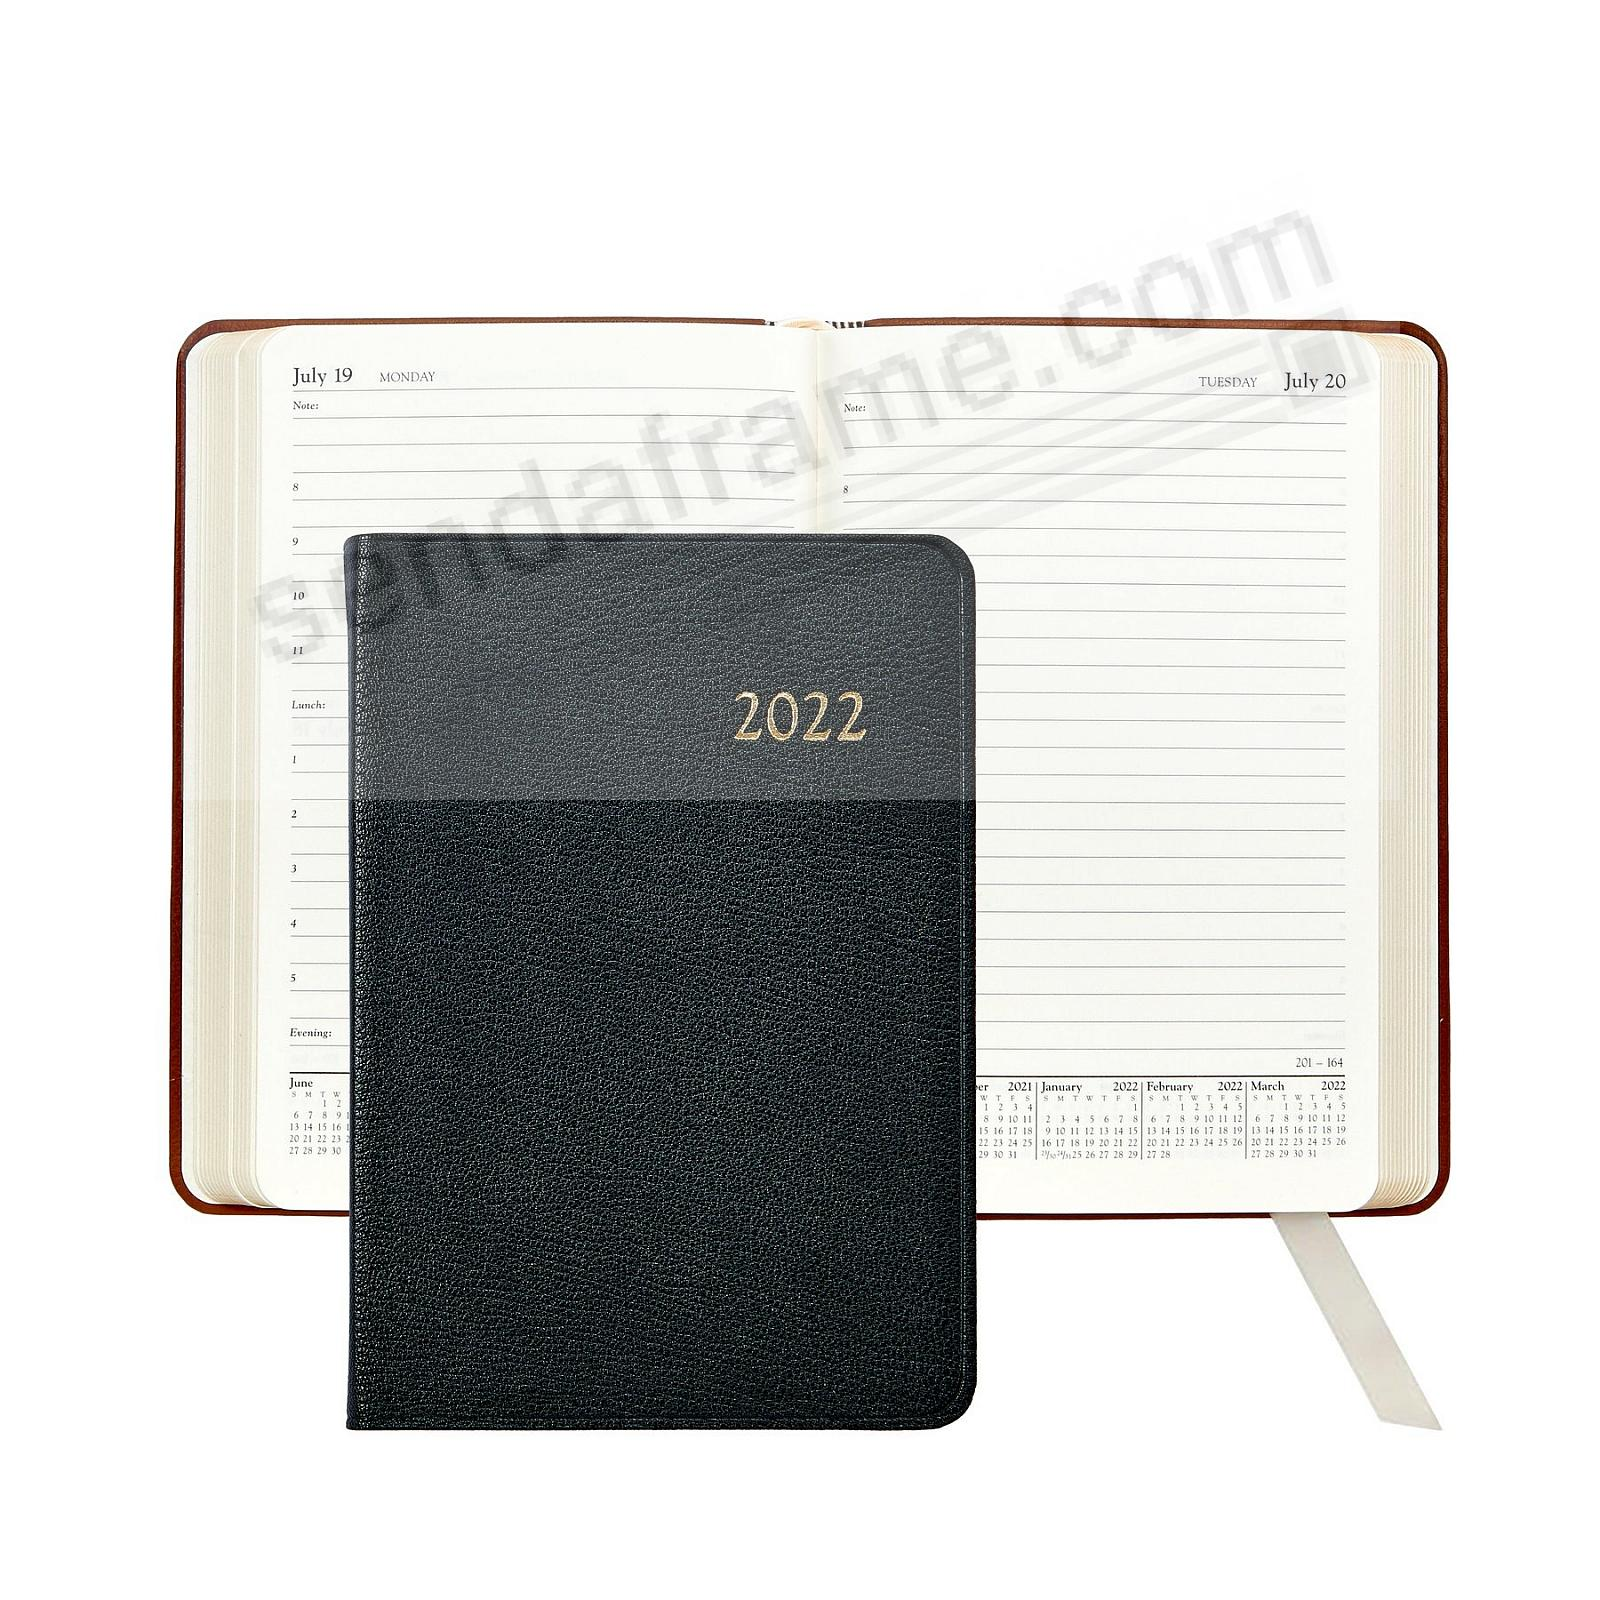 2021 BLACK 8-in Daily Journal Goatskin leather by Graphic Image™